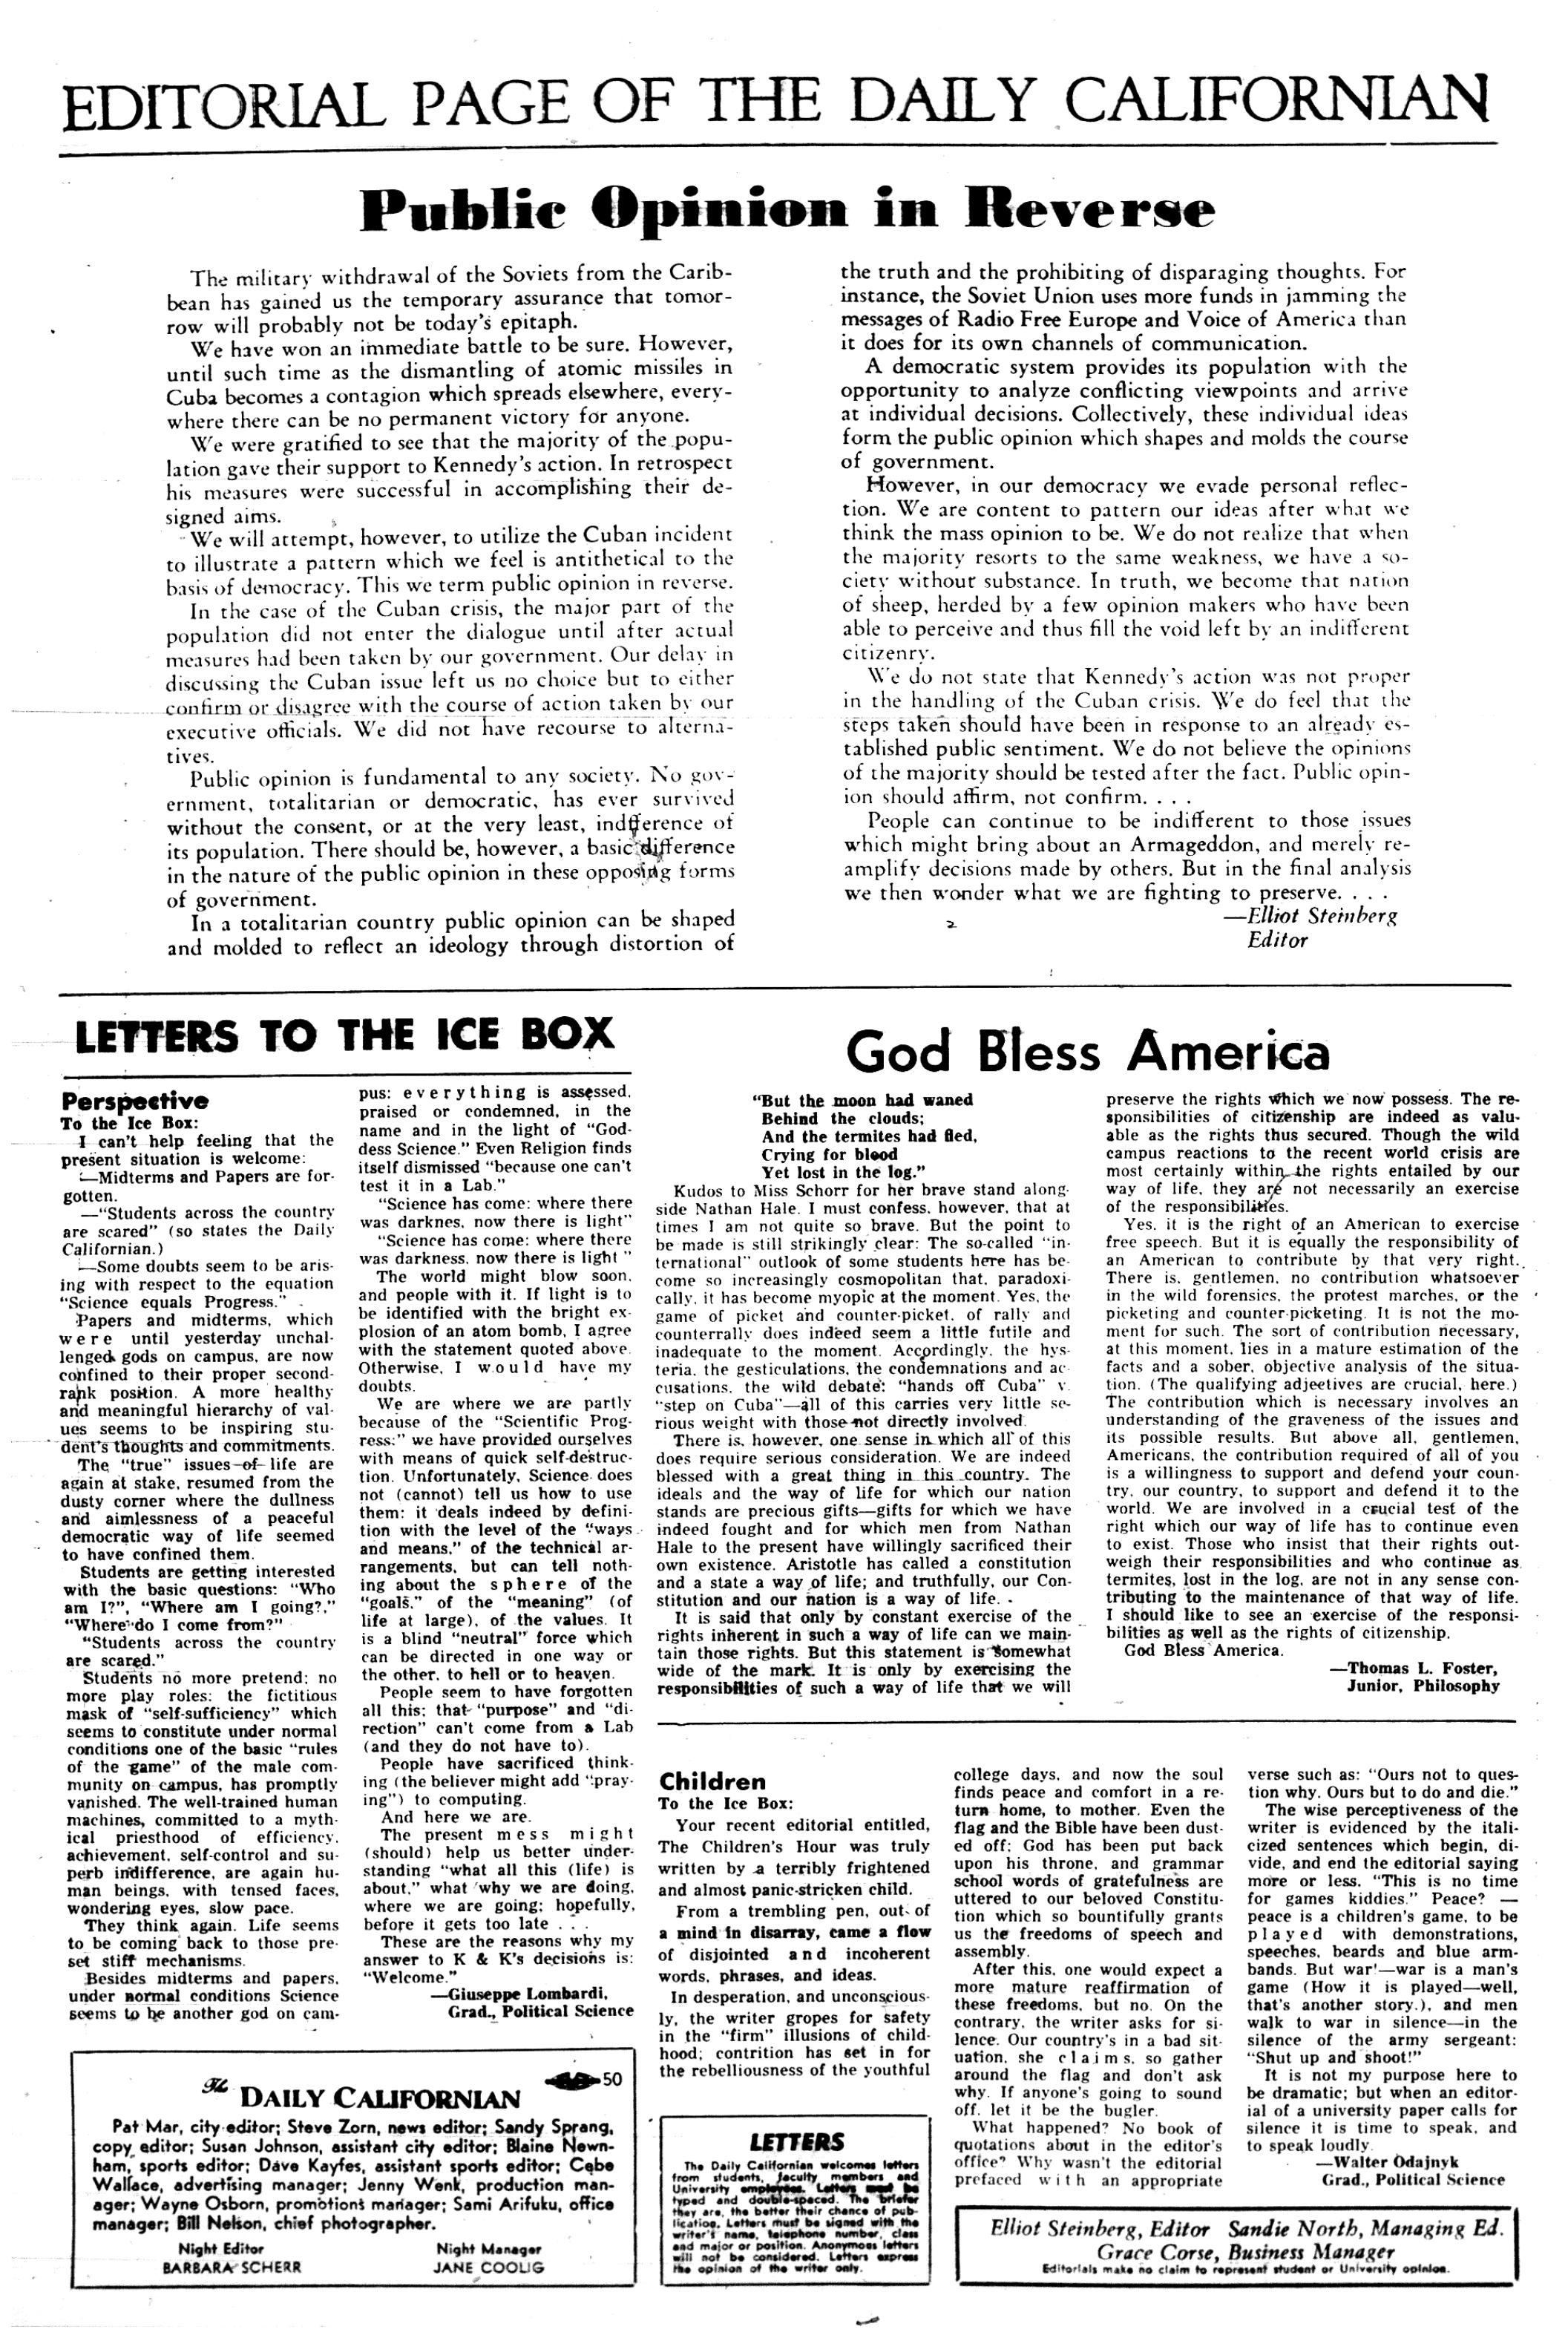 Oct  30, 1962 | The Daily Californian Archive